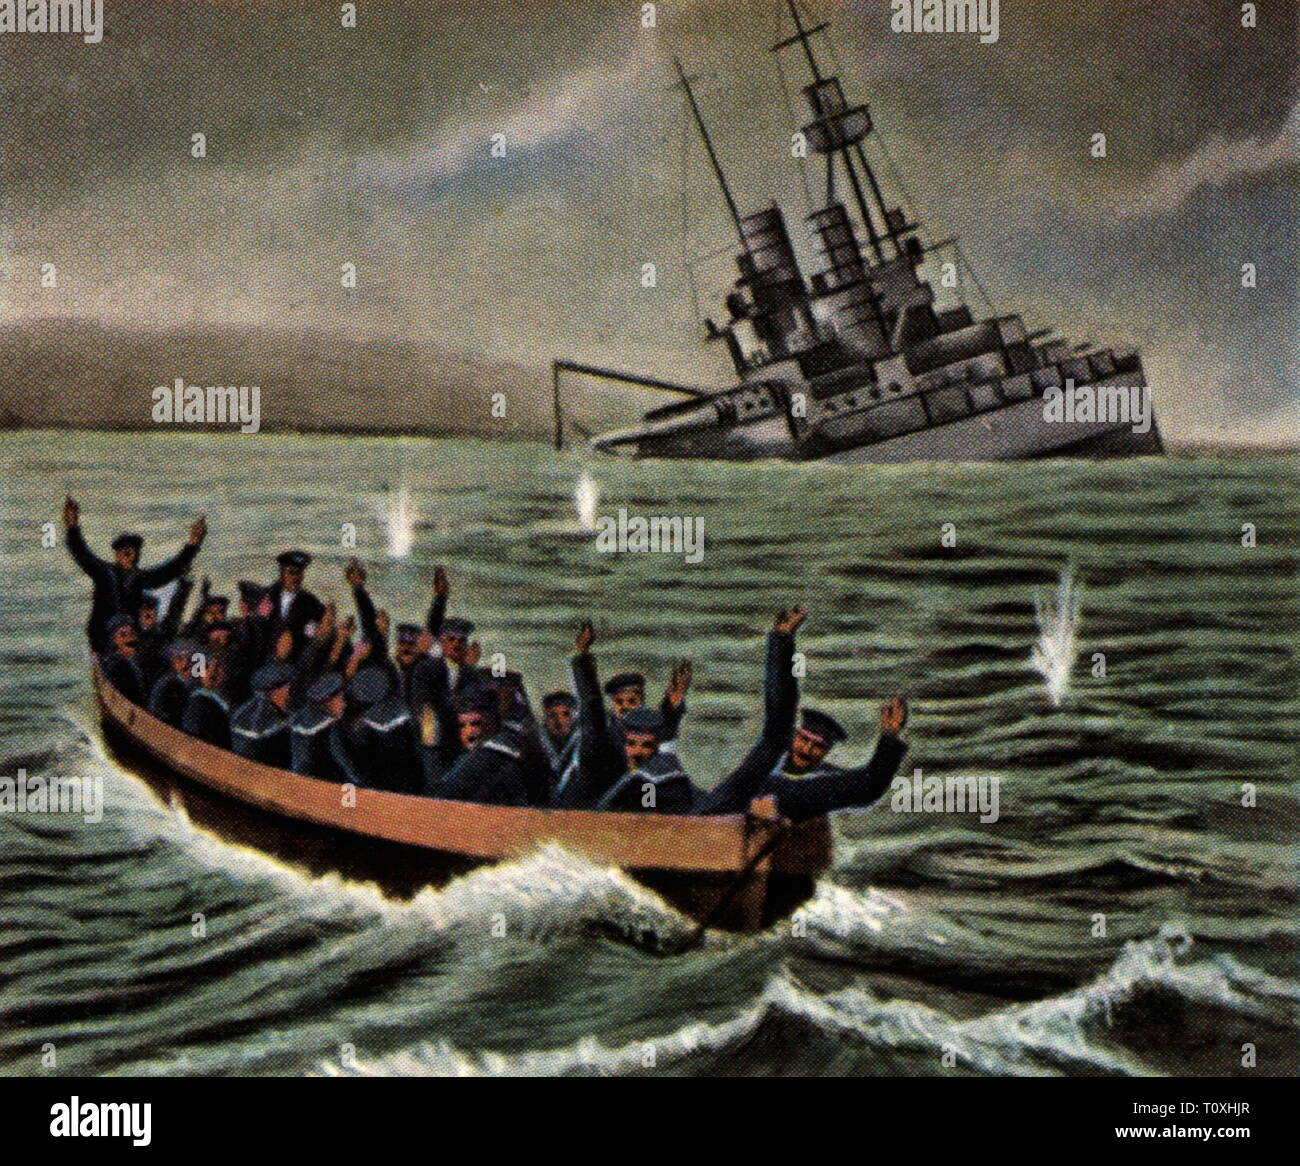 """scuttling of the German high seas fleet at Scapa Flow, Orkney, 21.6.1919, sinking ship of the line SMS """"Bayern"""", coloured photograph, cigarette card, series """"Die Nachkriegszeit"""", 1935, Imperial fleet, German Navy, military, sinkings, founder, foundering, sinking, warship, warships, sailor, seaman, sailors, seamen, jubilate, jubilating, Germany, Great Britain, United Kingdom, Scotland, people, 1910s, 20th century, 1930s, high seas fleet, deep-sea fleet, coloured, colored, post war period, post-war period, post-war years, post-war era, historic, hi, Additional-Rights-Clearance-Info-Not-Available Stock Photo"""